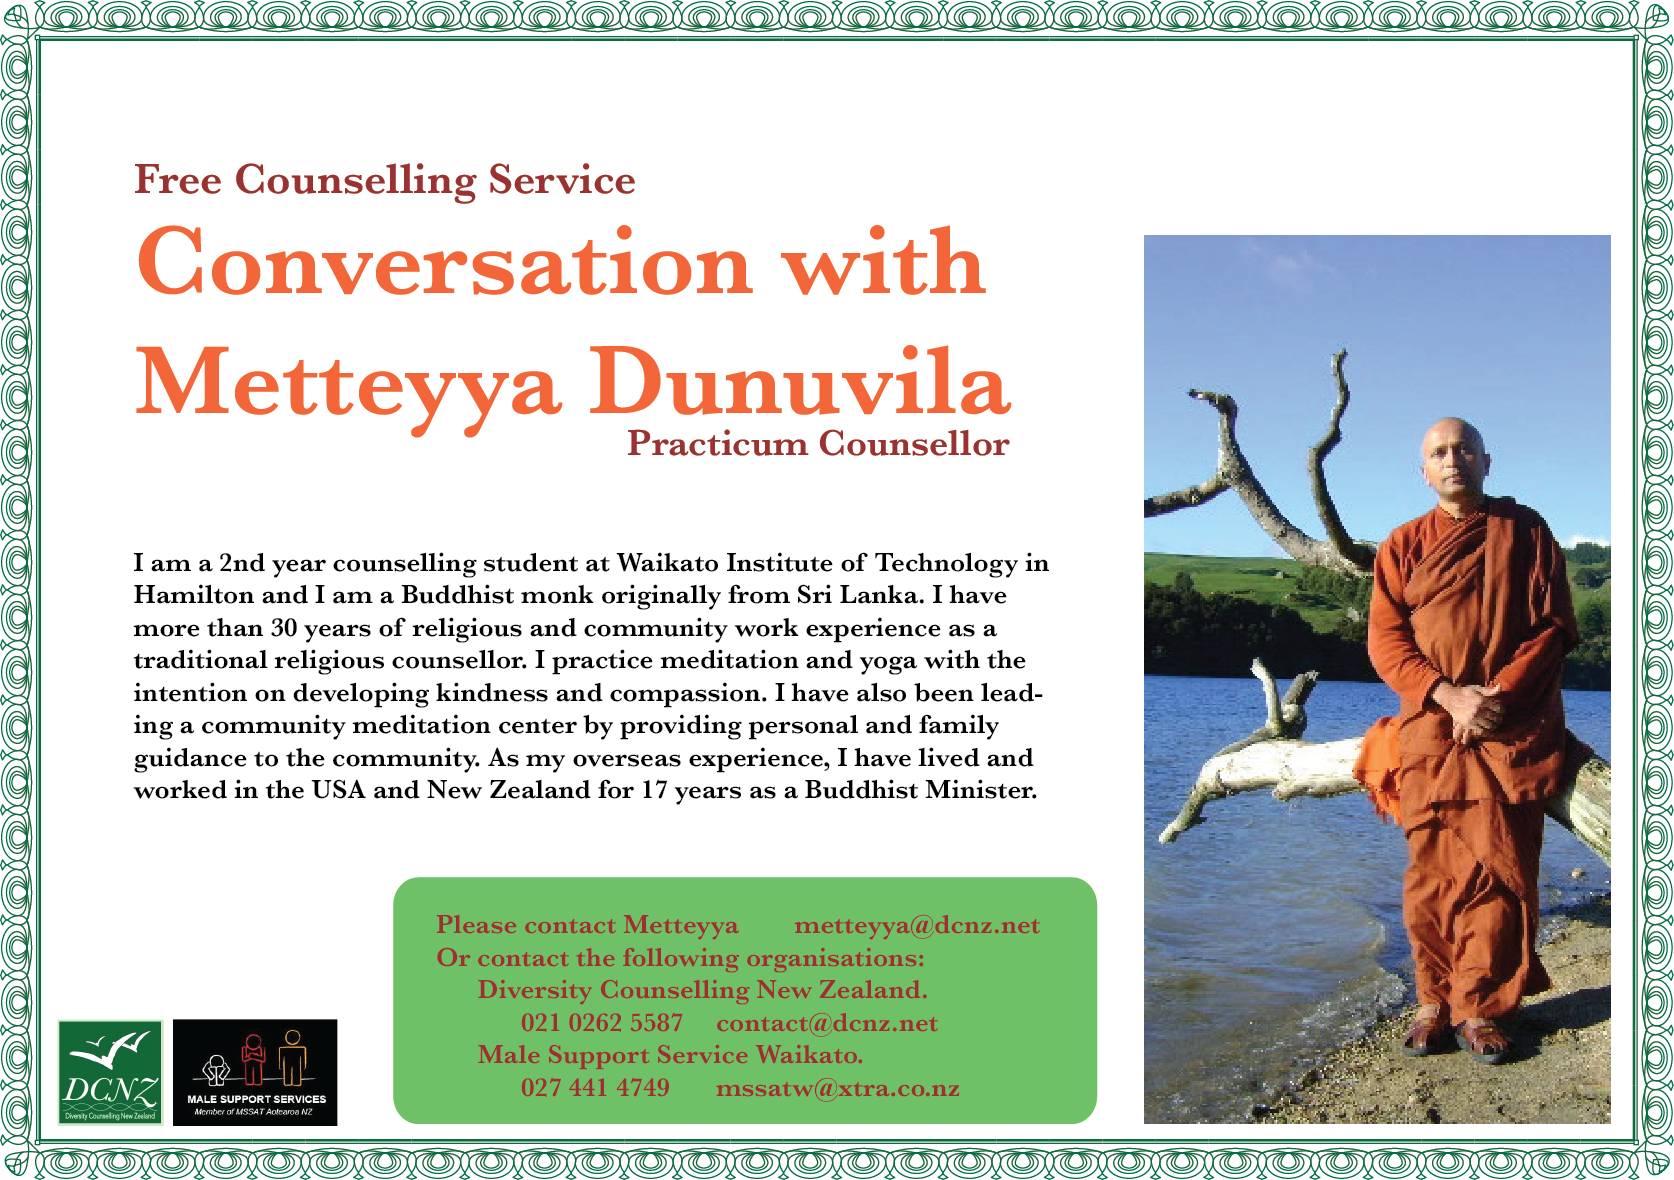 Conversation with  Metteyya Dunuvila (Practicum Counsellor)